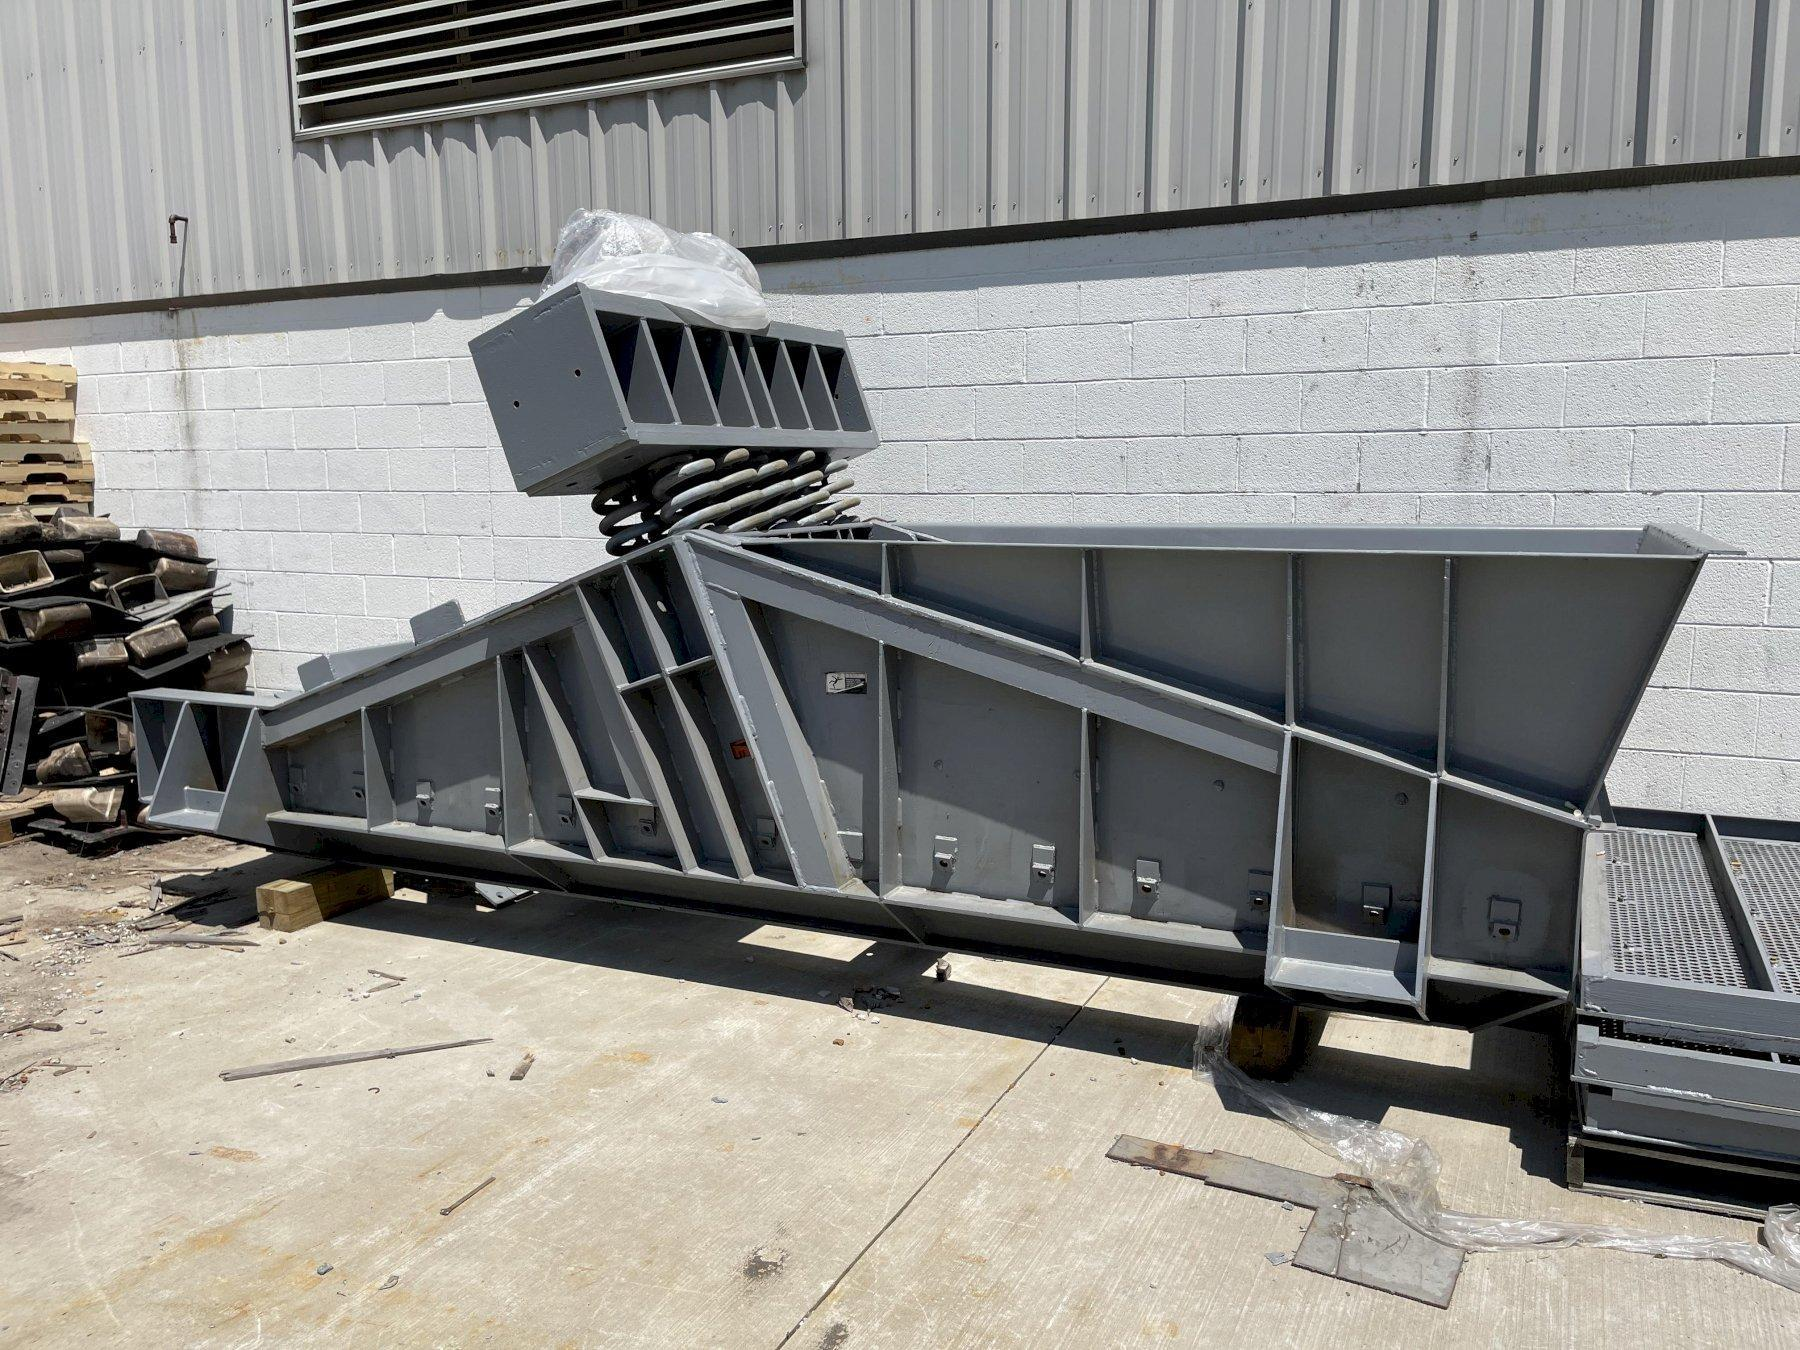 G/K 15' top drive shakeout with 2.7 hp drive, new upper and lower decks